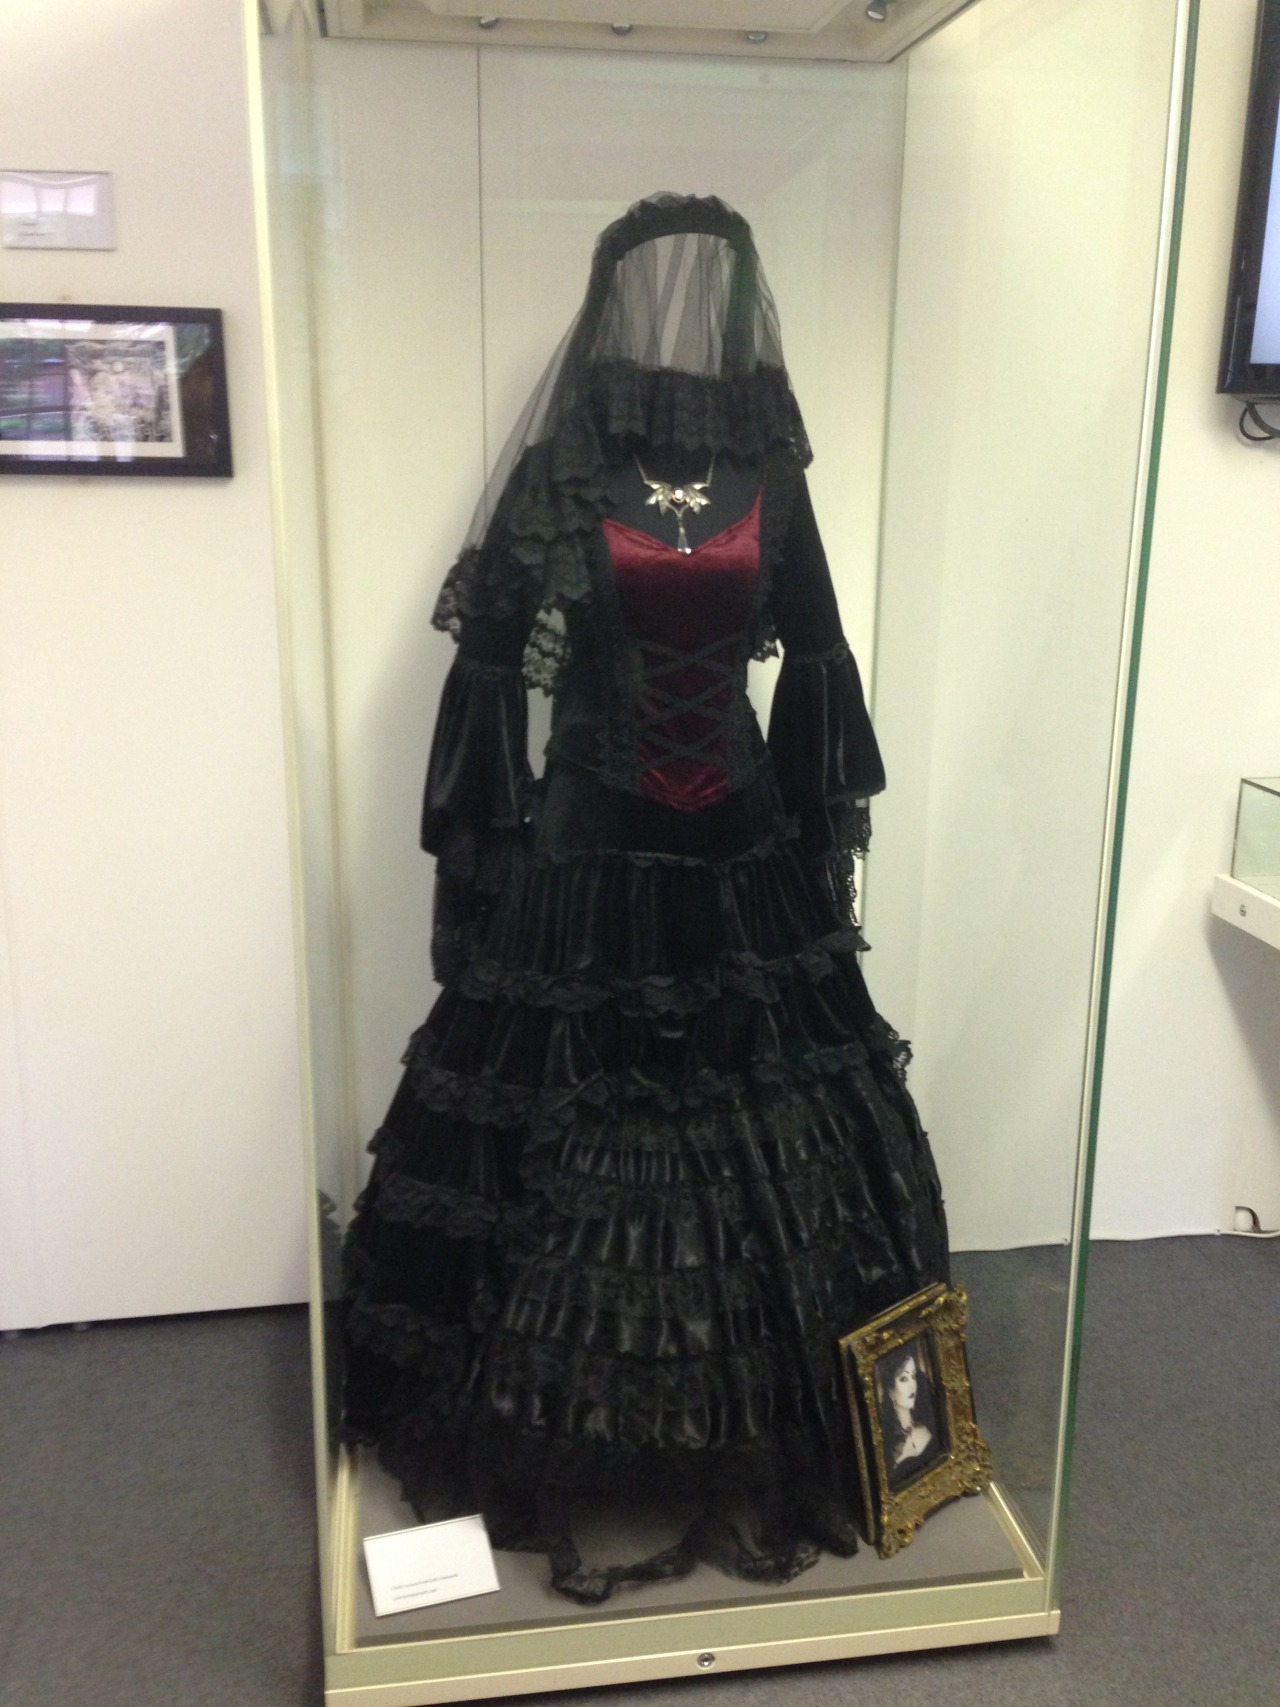 samaelandlilith:  At the weekend, I went to the 'This Is Goth' exhibition at the Museum of St Albans for World Goth Day (22nd May). It was smaller than I expected but still really good! The highlight was seeing one of the pieces from the amazing Lady Amaranth's private collection; it's stunning…